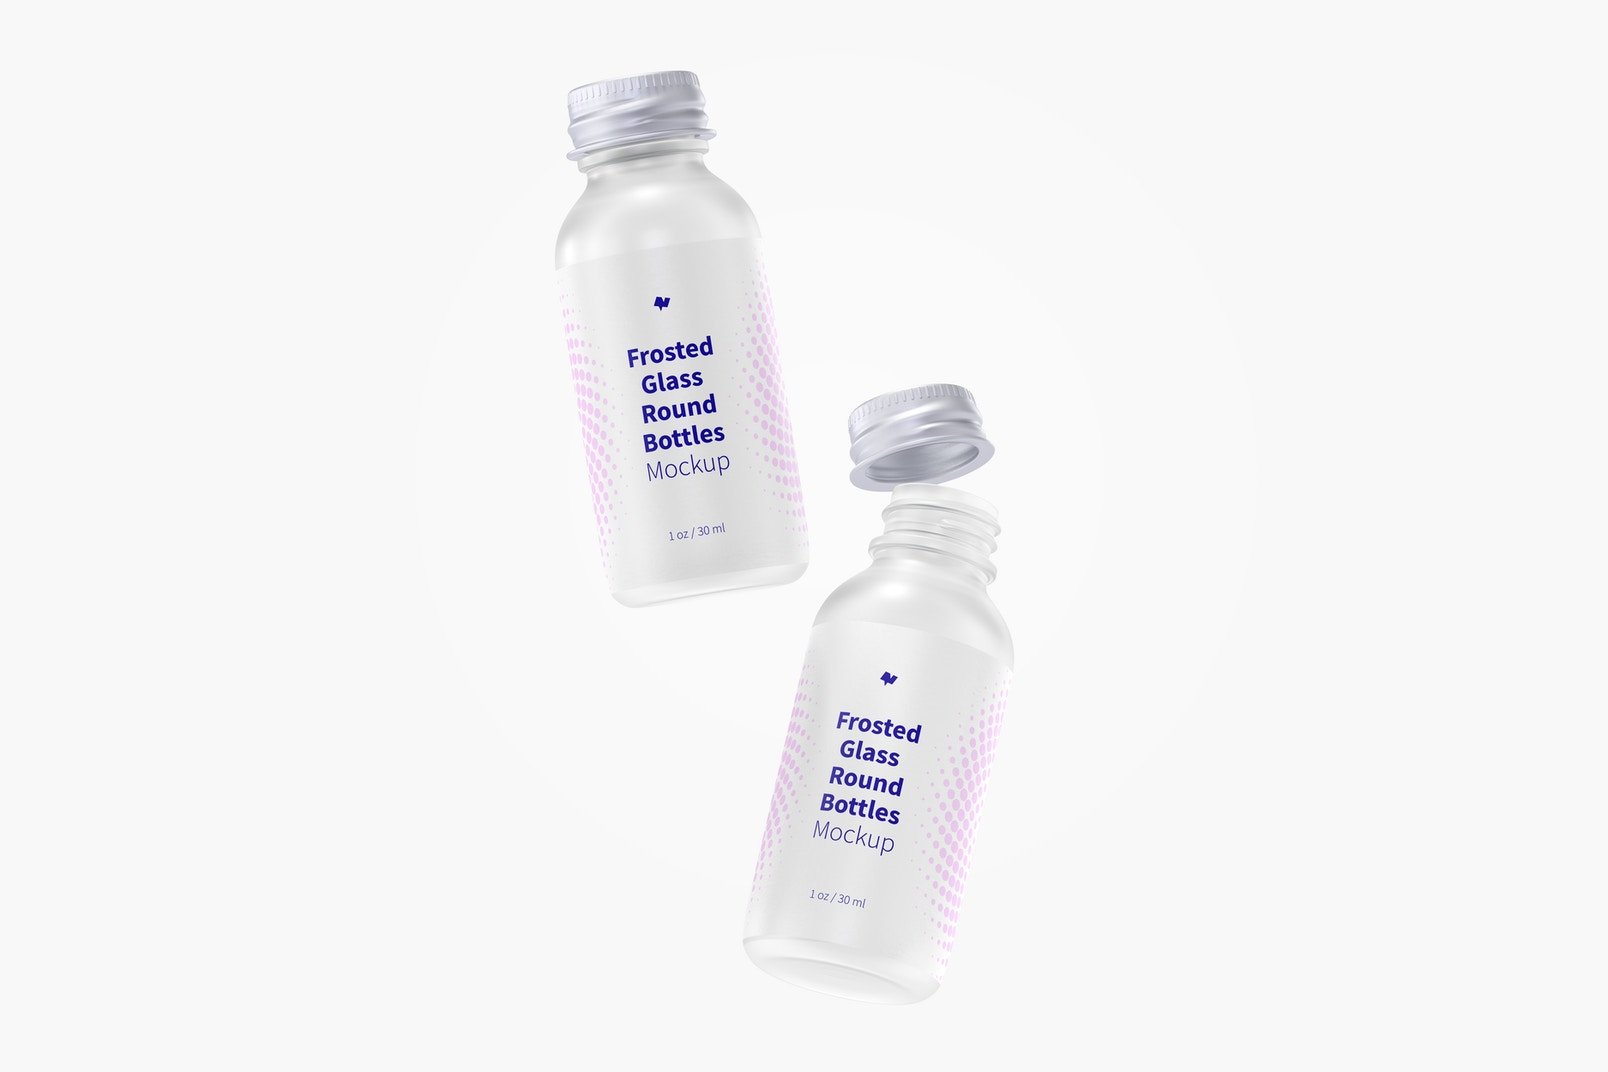 1 oz Frosted Glass Round Bottles Mockup, Falling